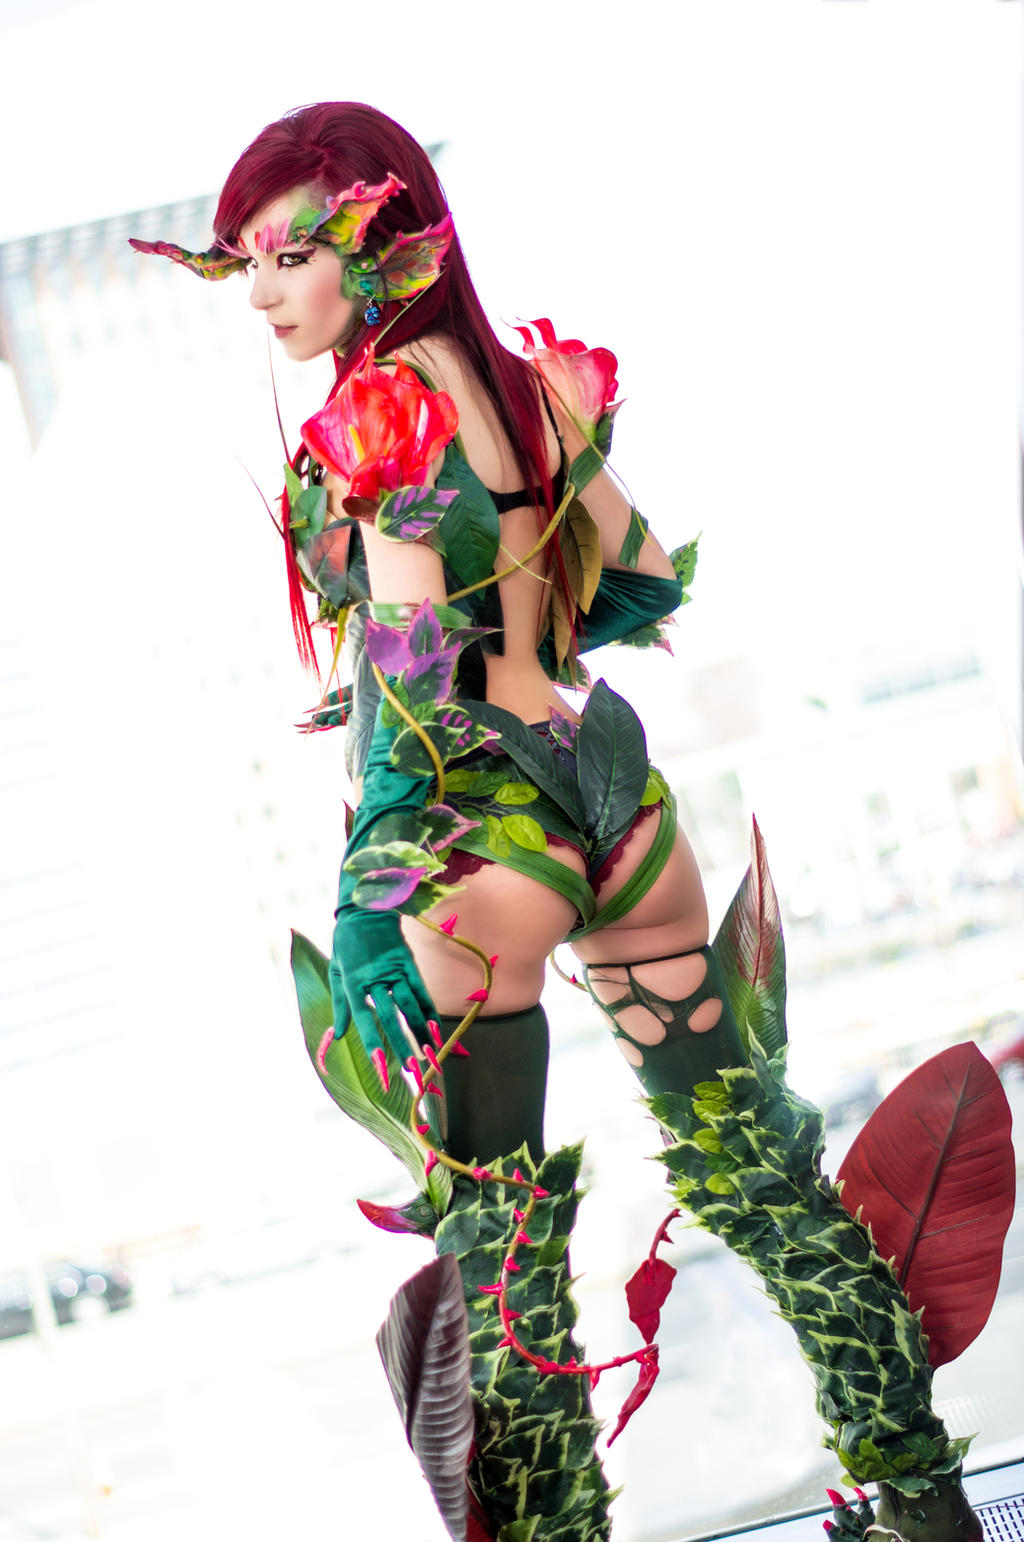 Zyra, Rise of Thorns by EminenceRain